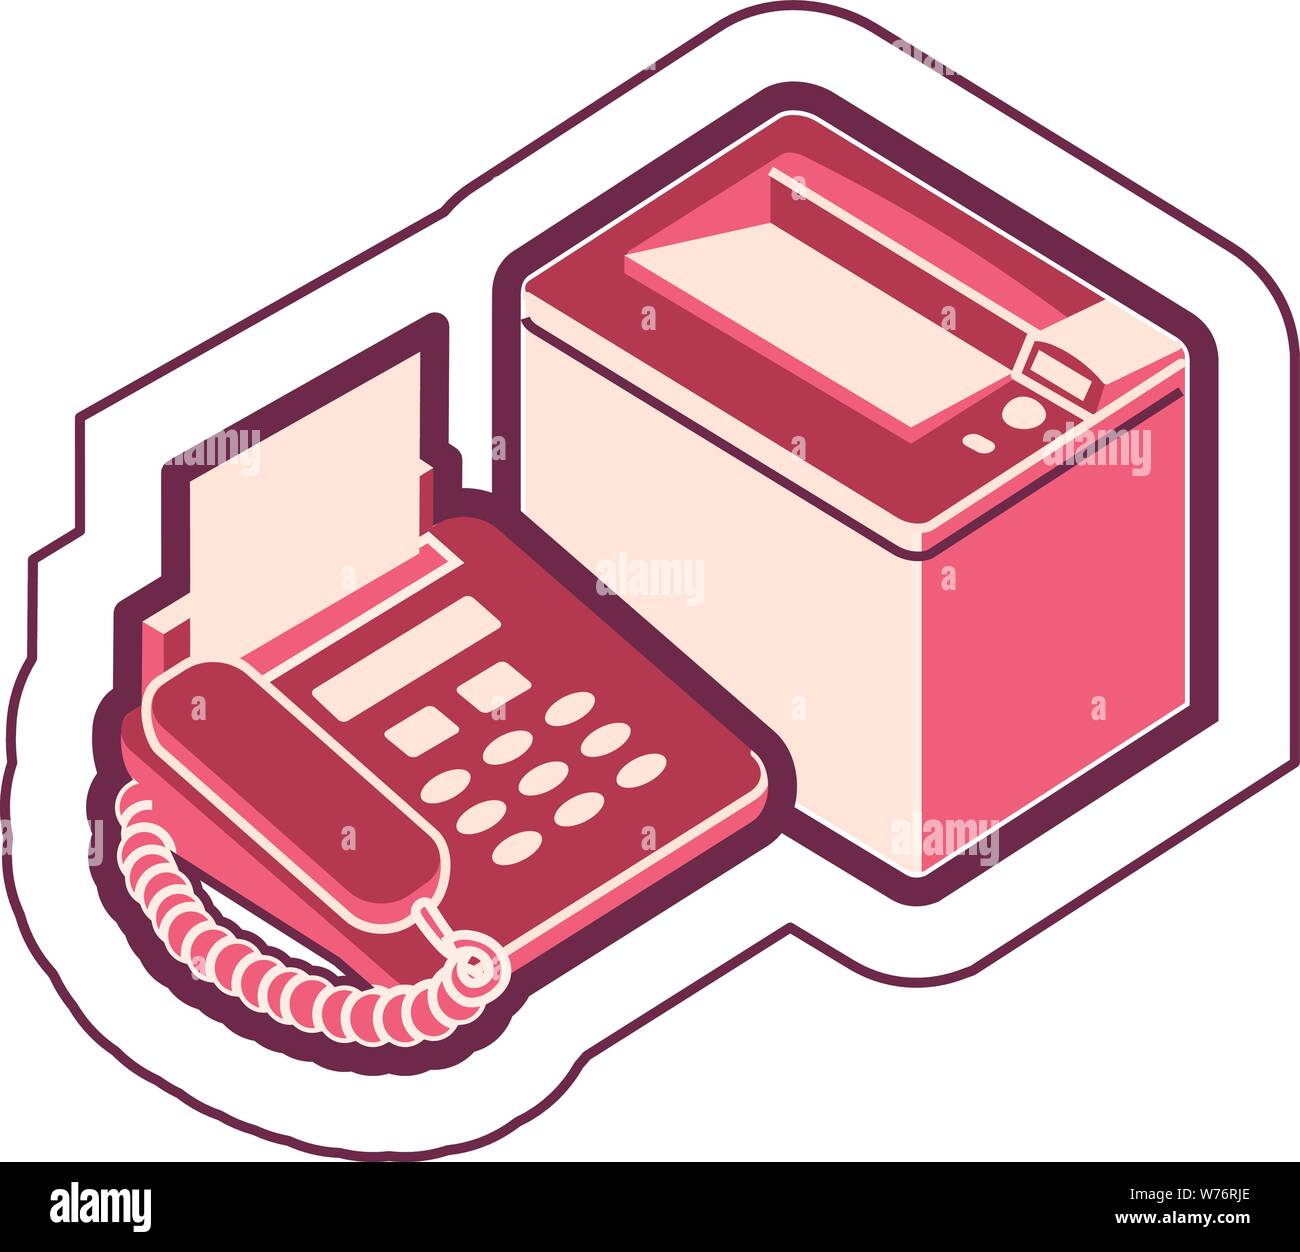 fax vector vectors high resolution stock photography and images alamy alamy